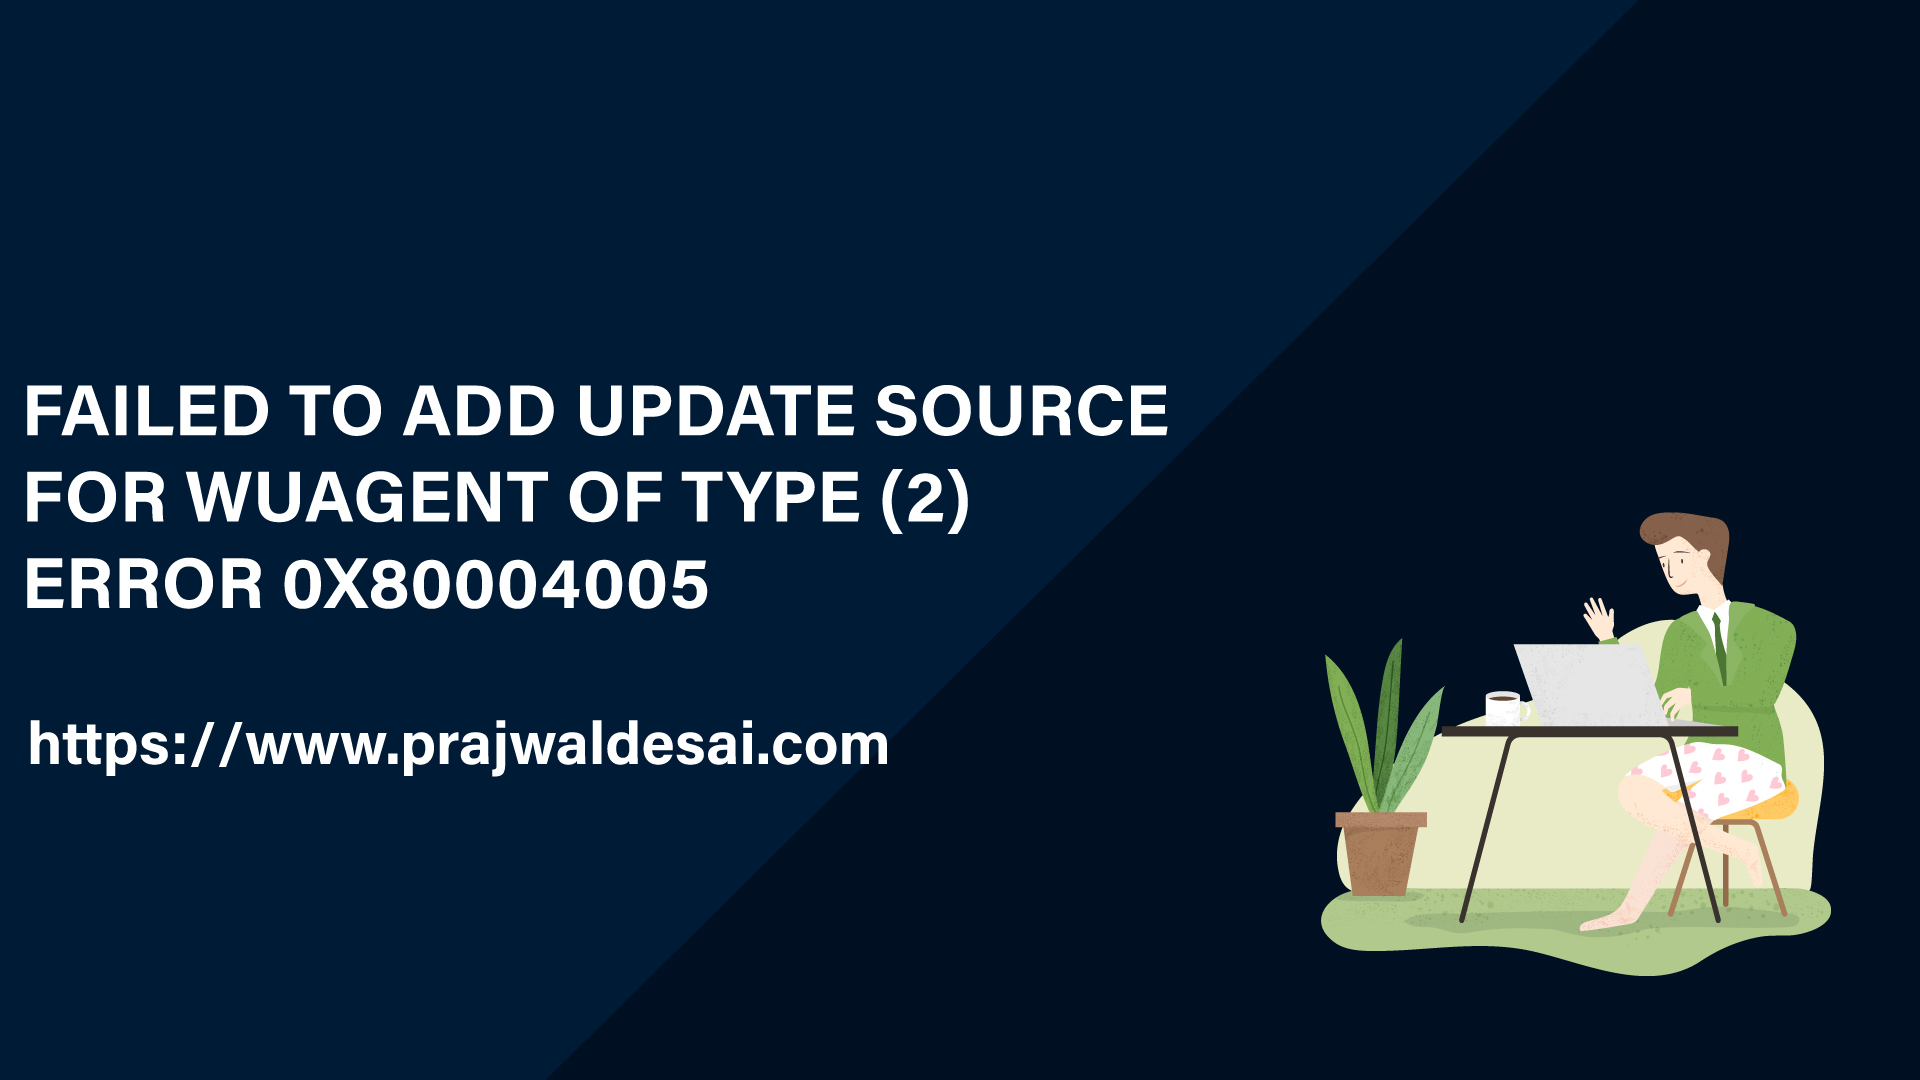 Failed to Add Update Source for WUAgent Error 0x80004005